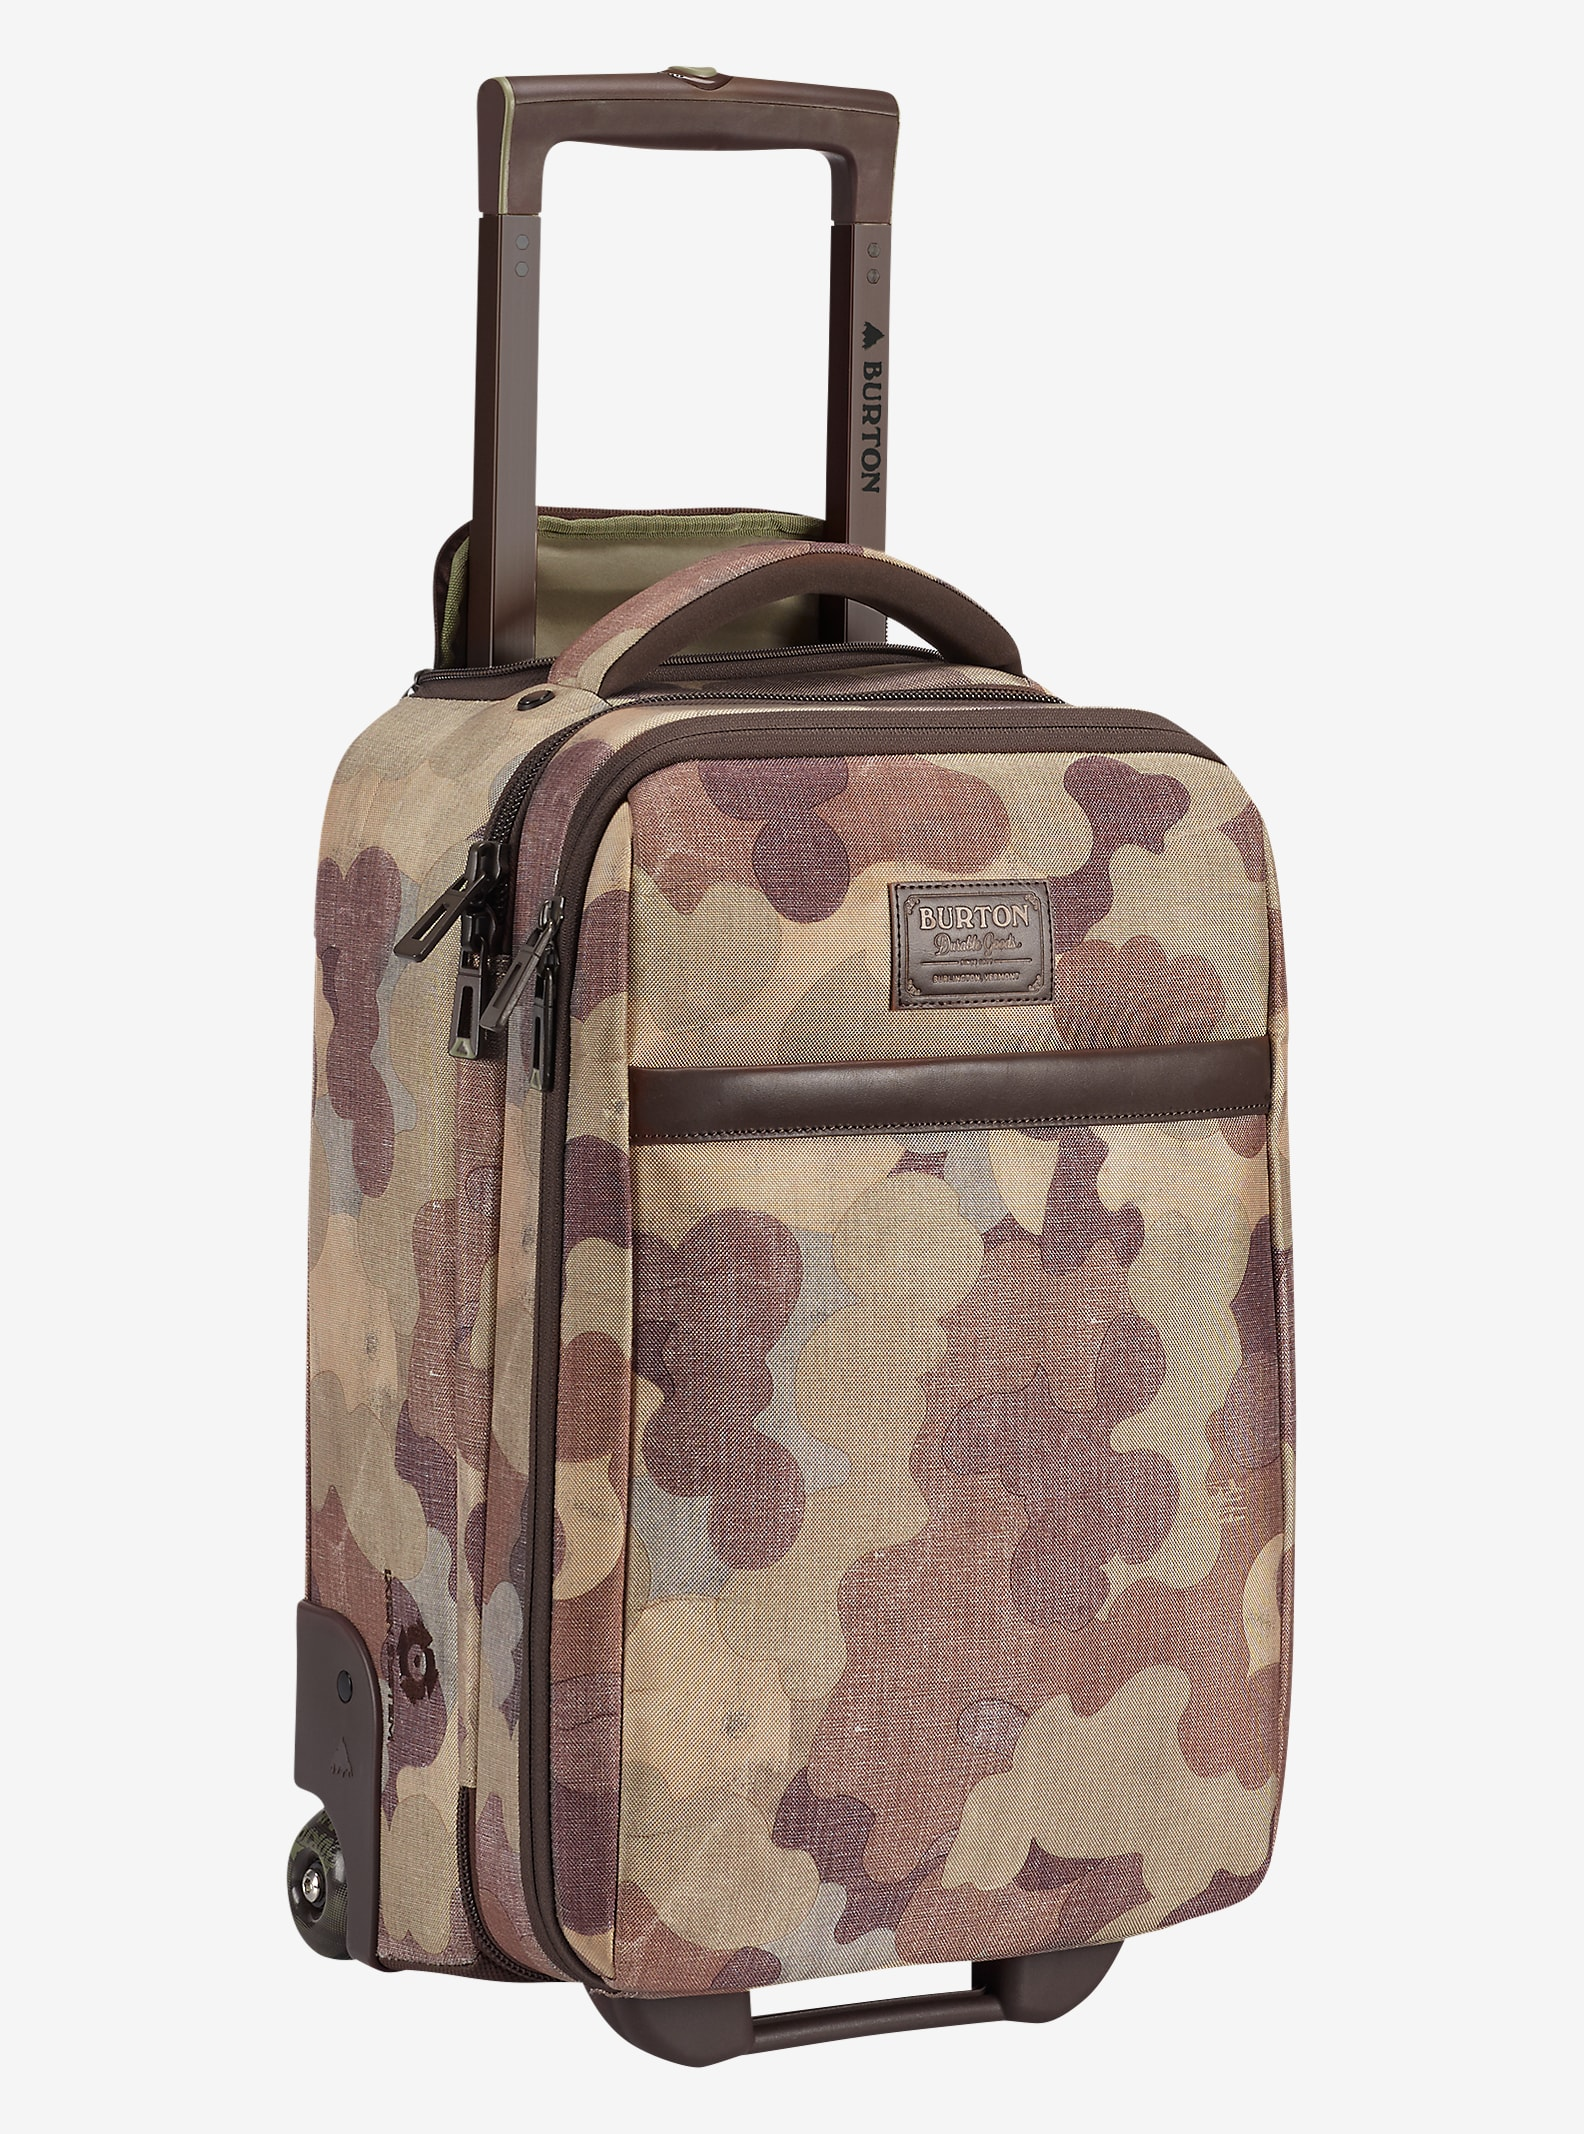 Burton Wheelie Flyer Travel Bag shown in Storm Camo Print